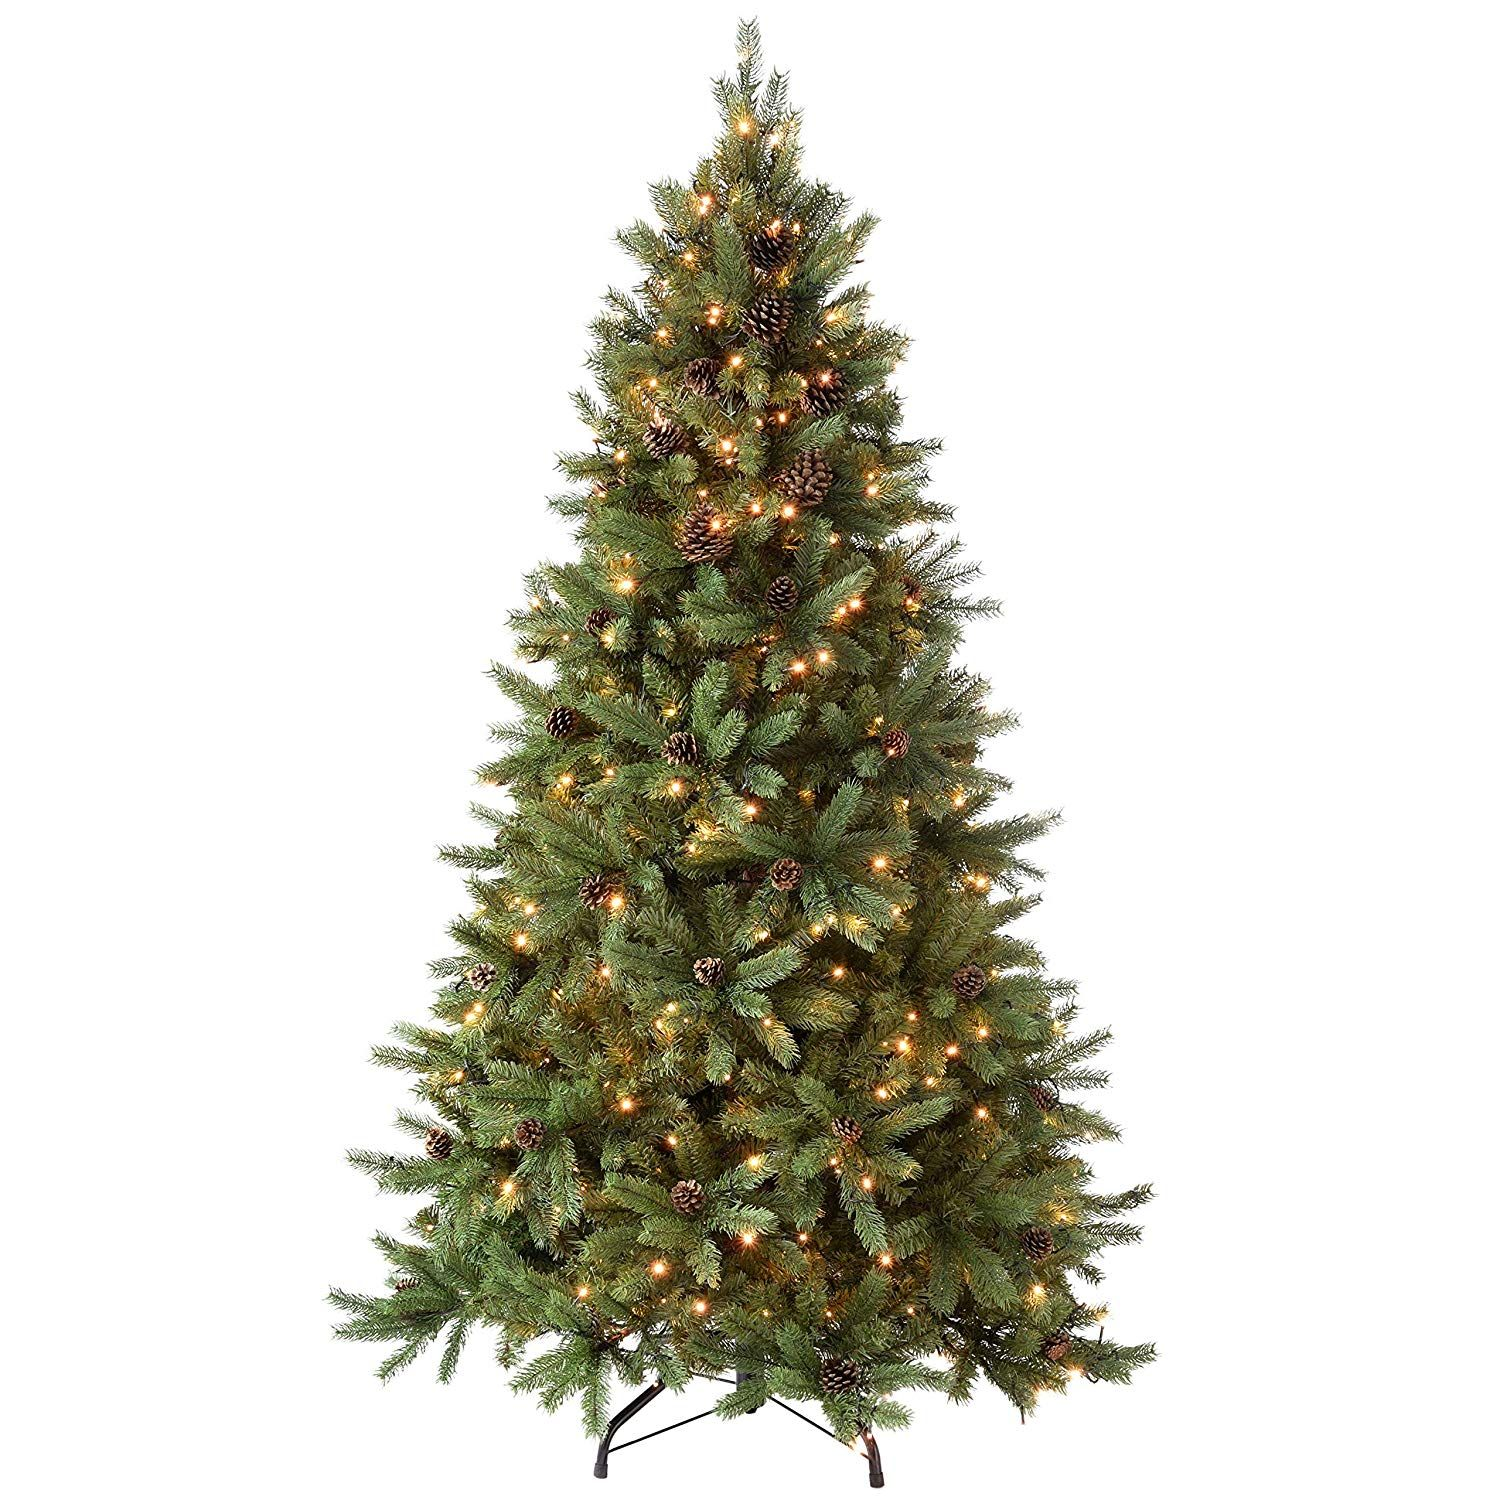 what is the purpose of a christmas tree